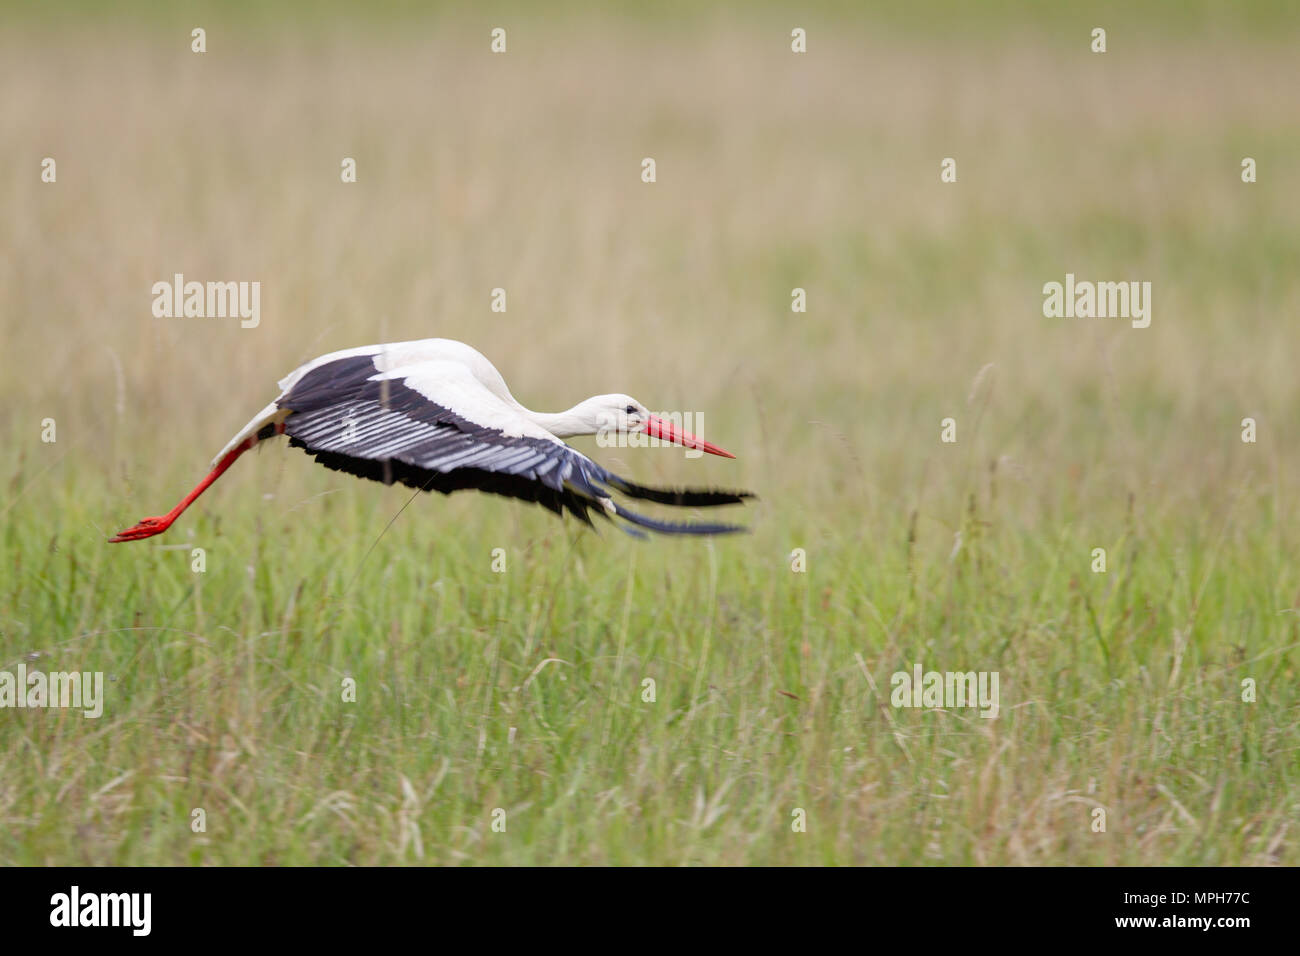 White Stork (Ciconia ciconia) flying over a meadow in spring in the nature protection area Mönchbruch near Frankfurt, Germany. Stock Photo